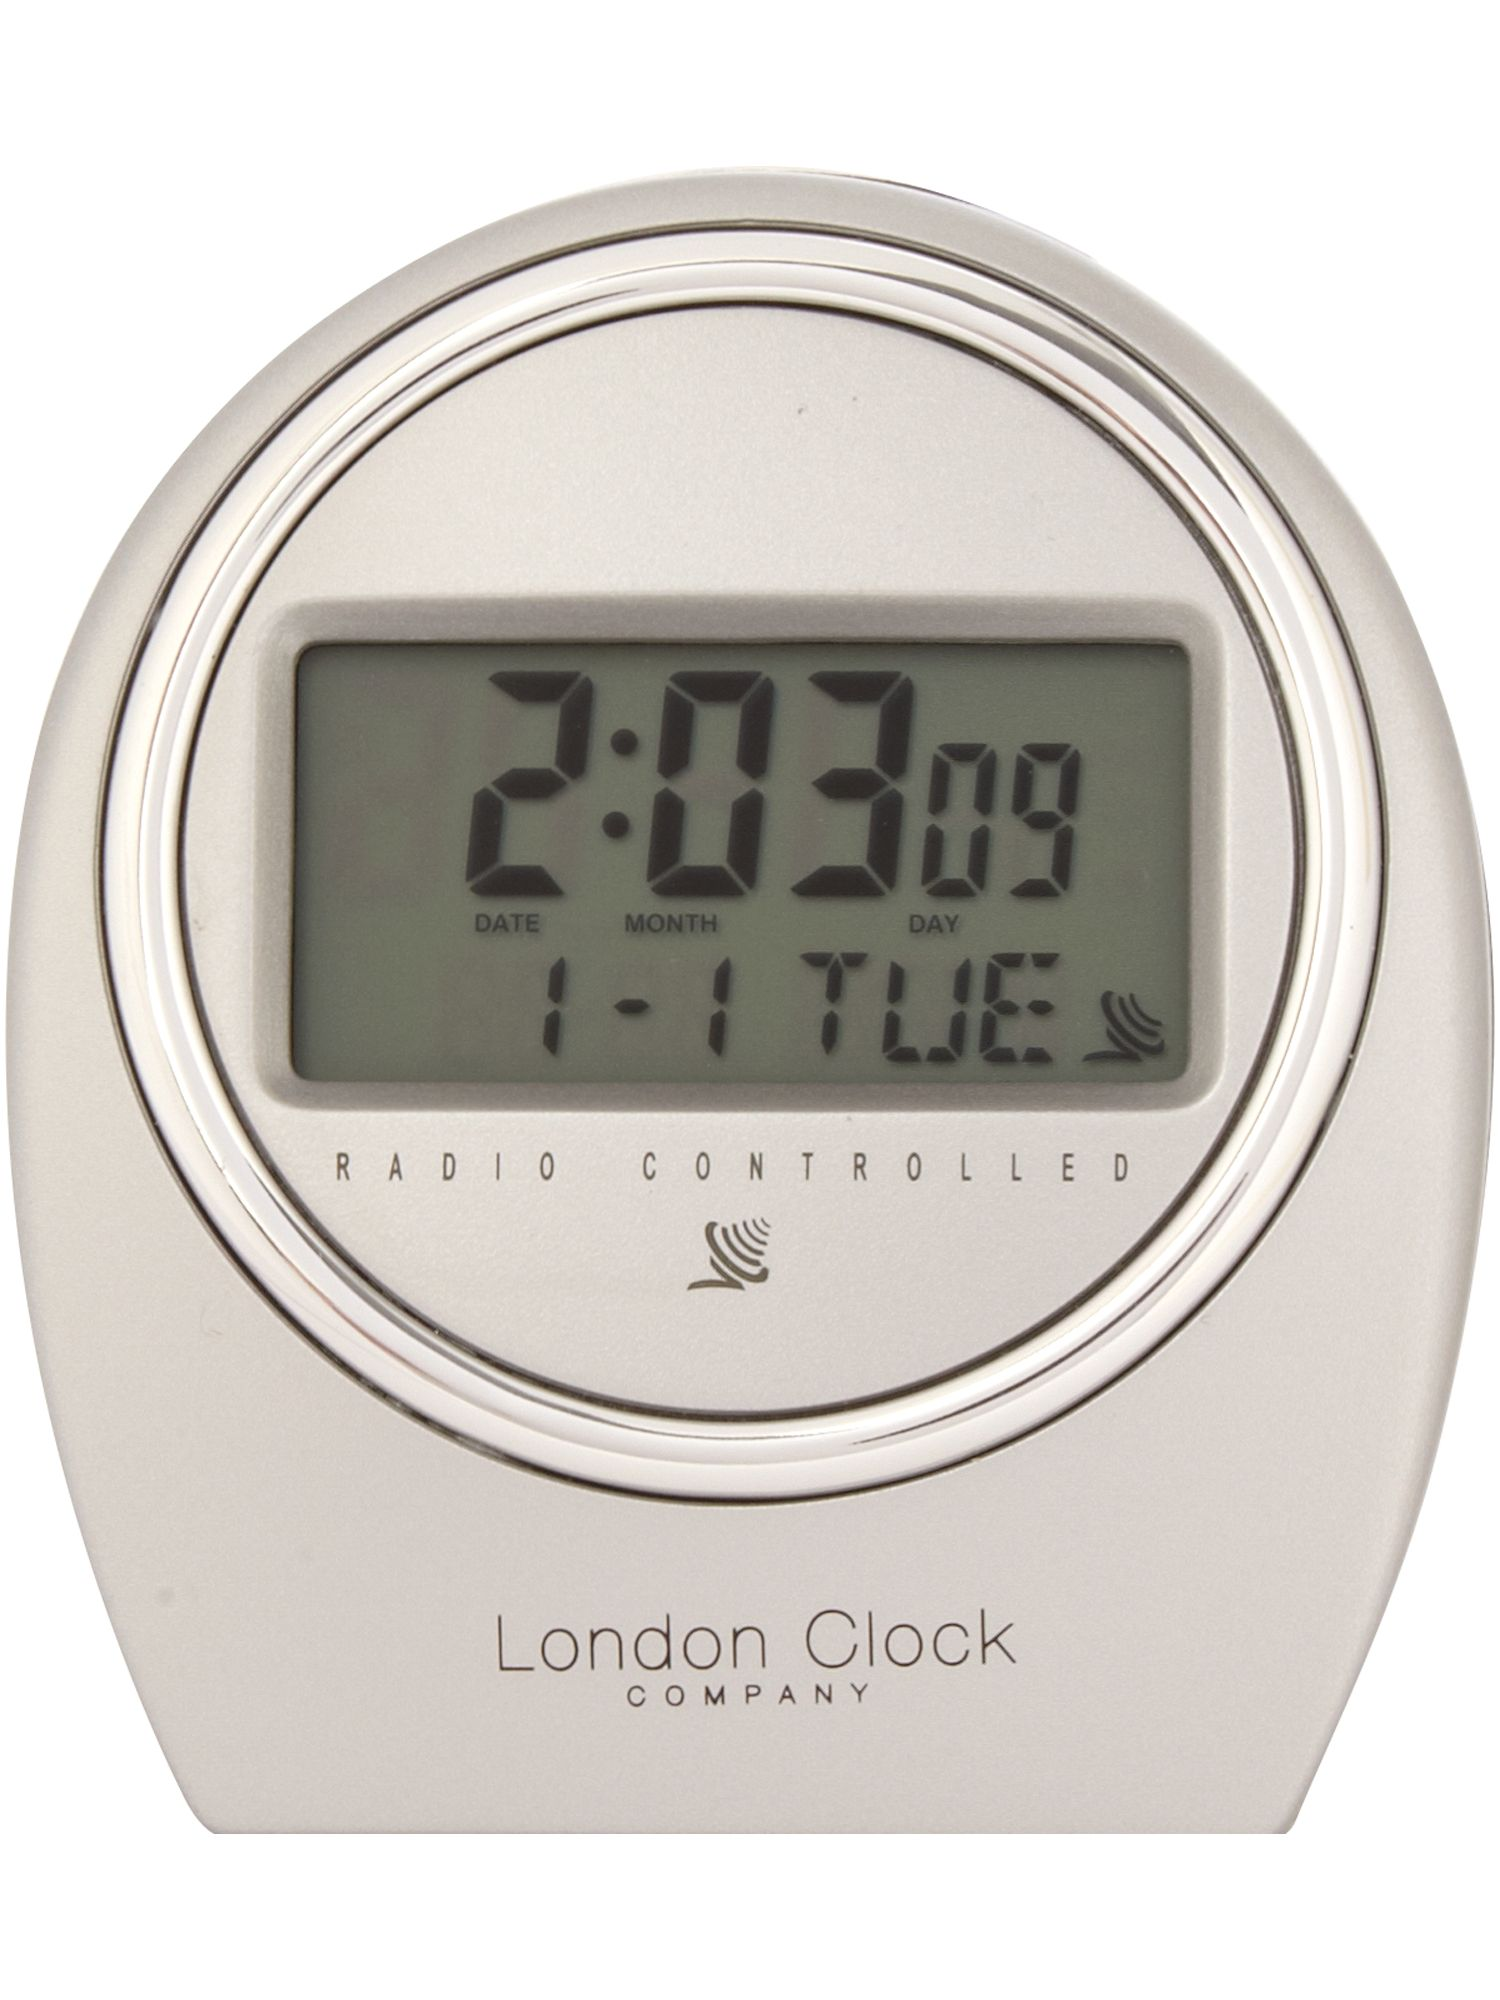 london clock radio controlled silver case alarm review. Black Bedroom Furniture Sets. Home Design Ideas